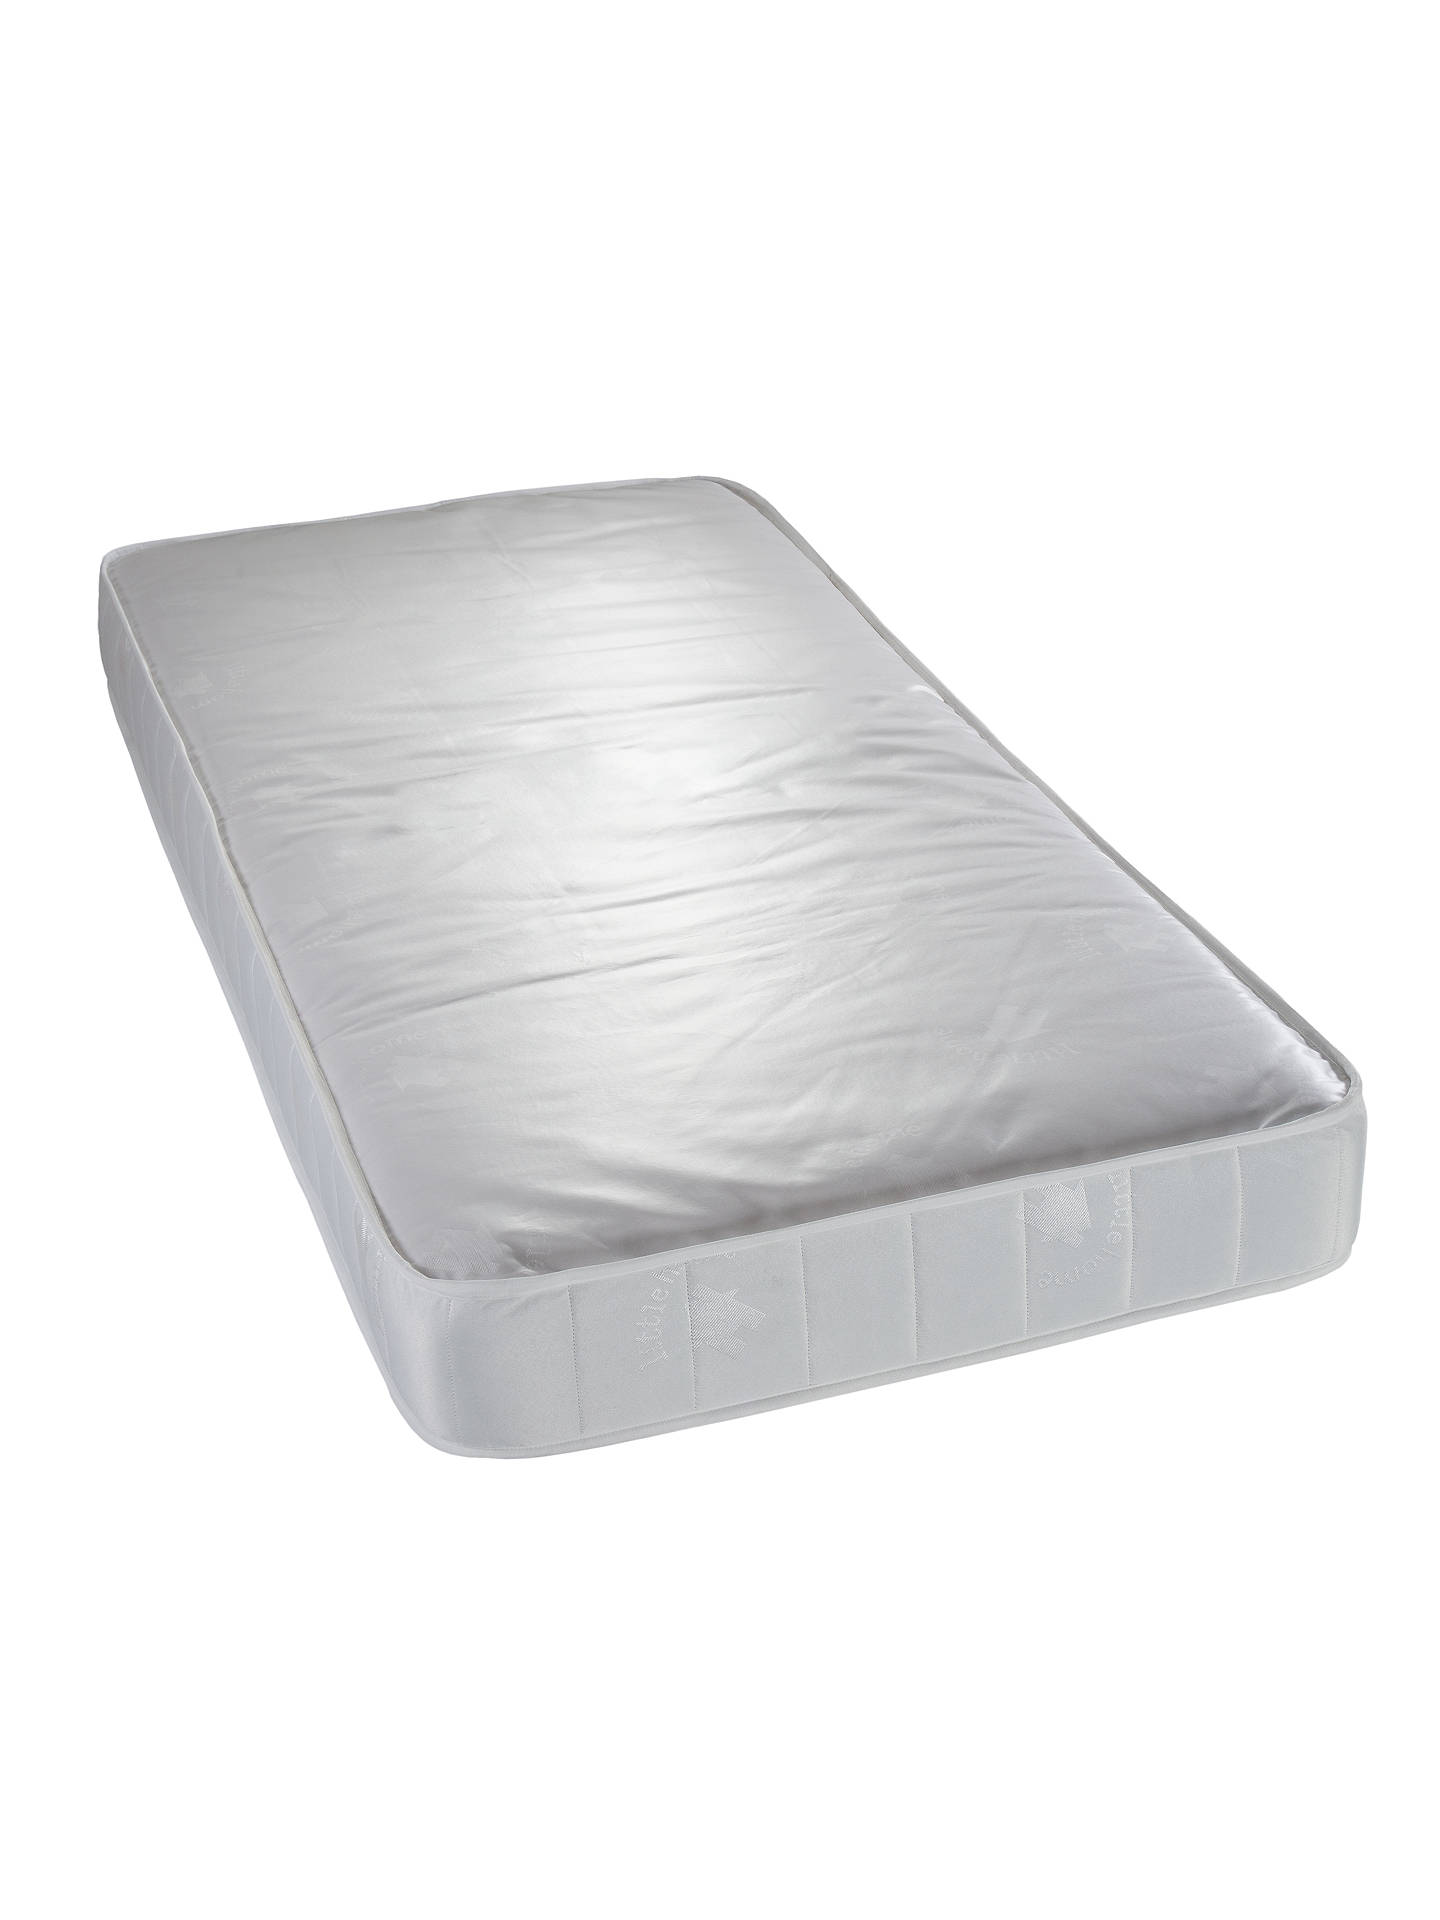 Buylittle home at John Lewis 15cm Deep Open Spring Water Resistant Bunk Bed Mattress, Medium, Single Online at johnlewis.com